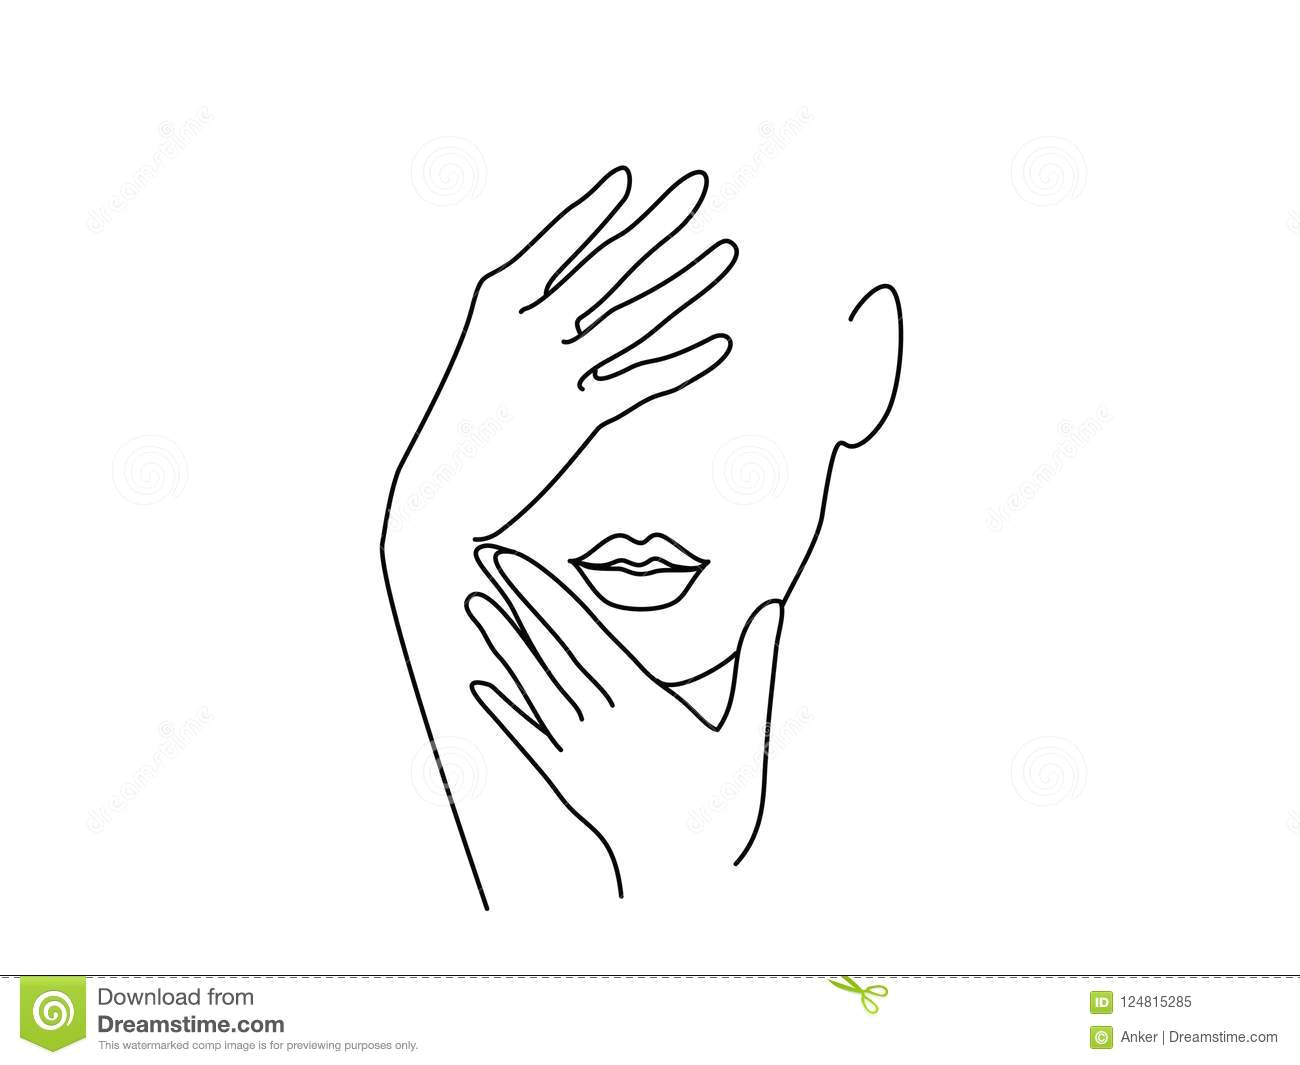 Drawings Of Ladies Hands Line Drawing Art Woman Face with Hands Stock Vector Illustration